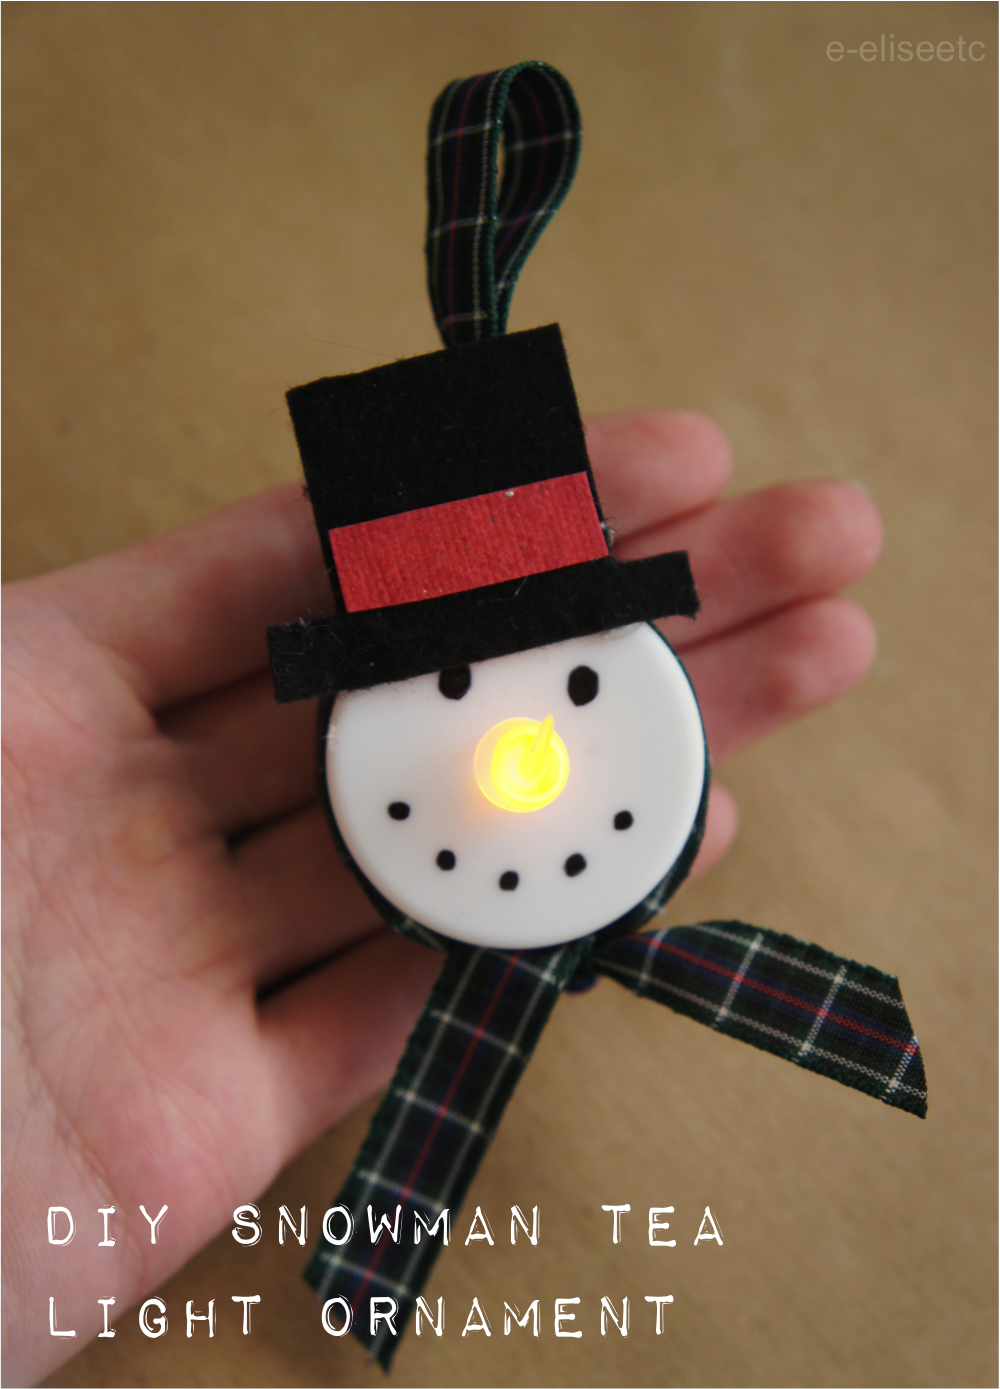 diy snowman tea light ornament